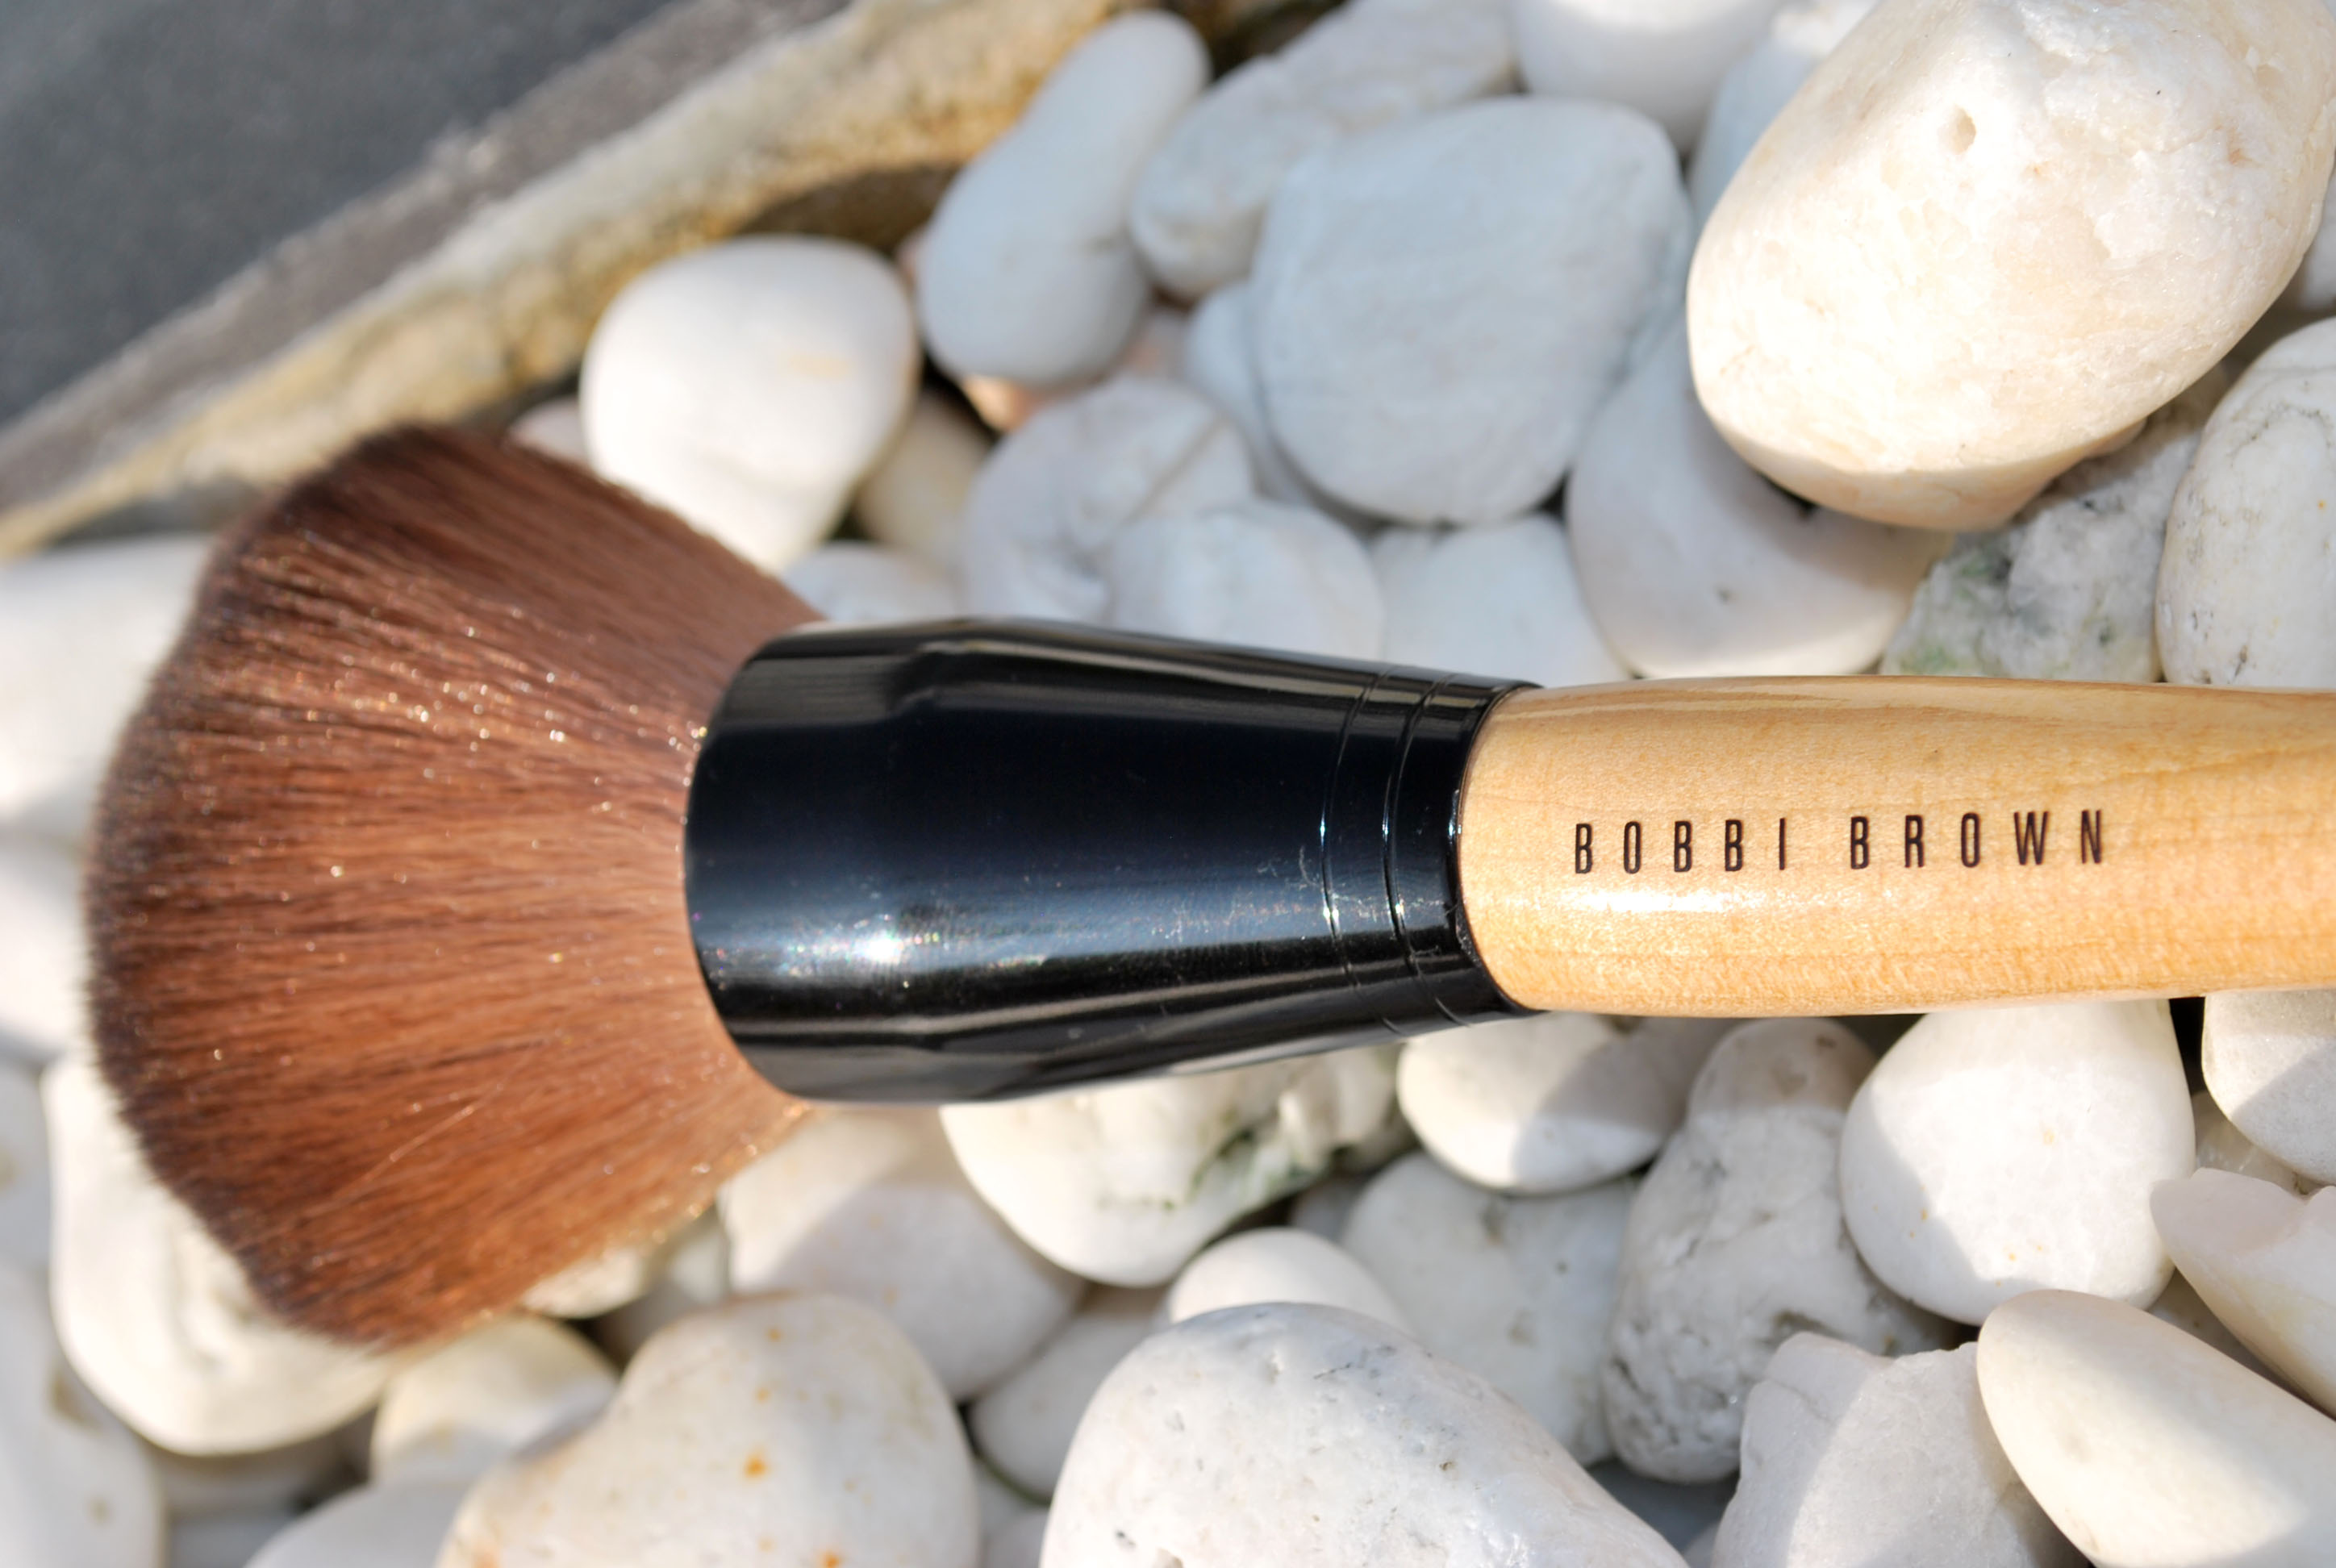 review Bobbi Brown powder brush dupe